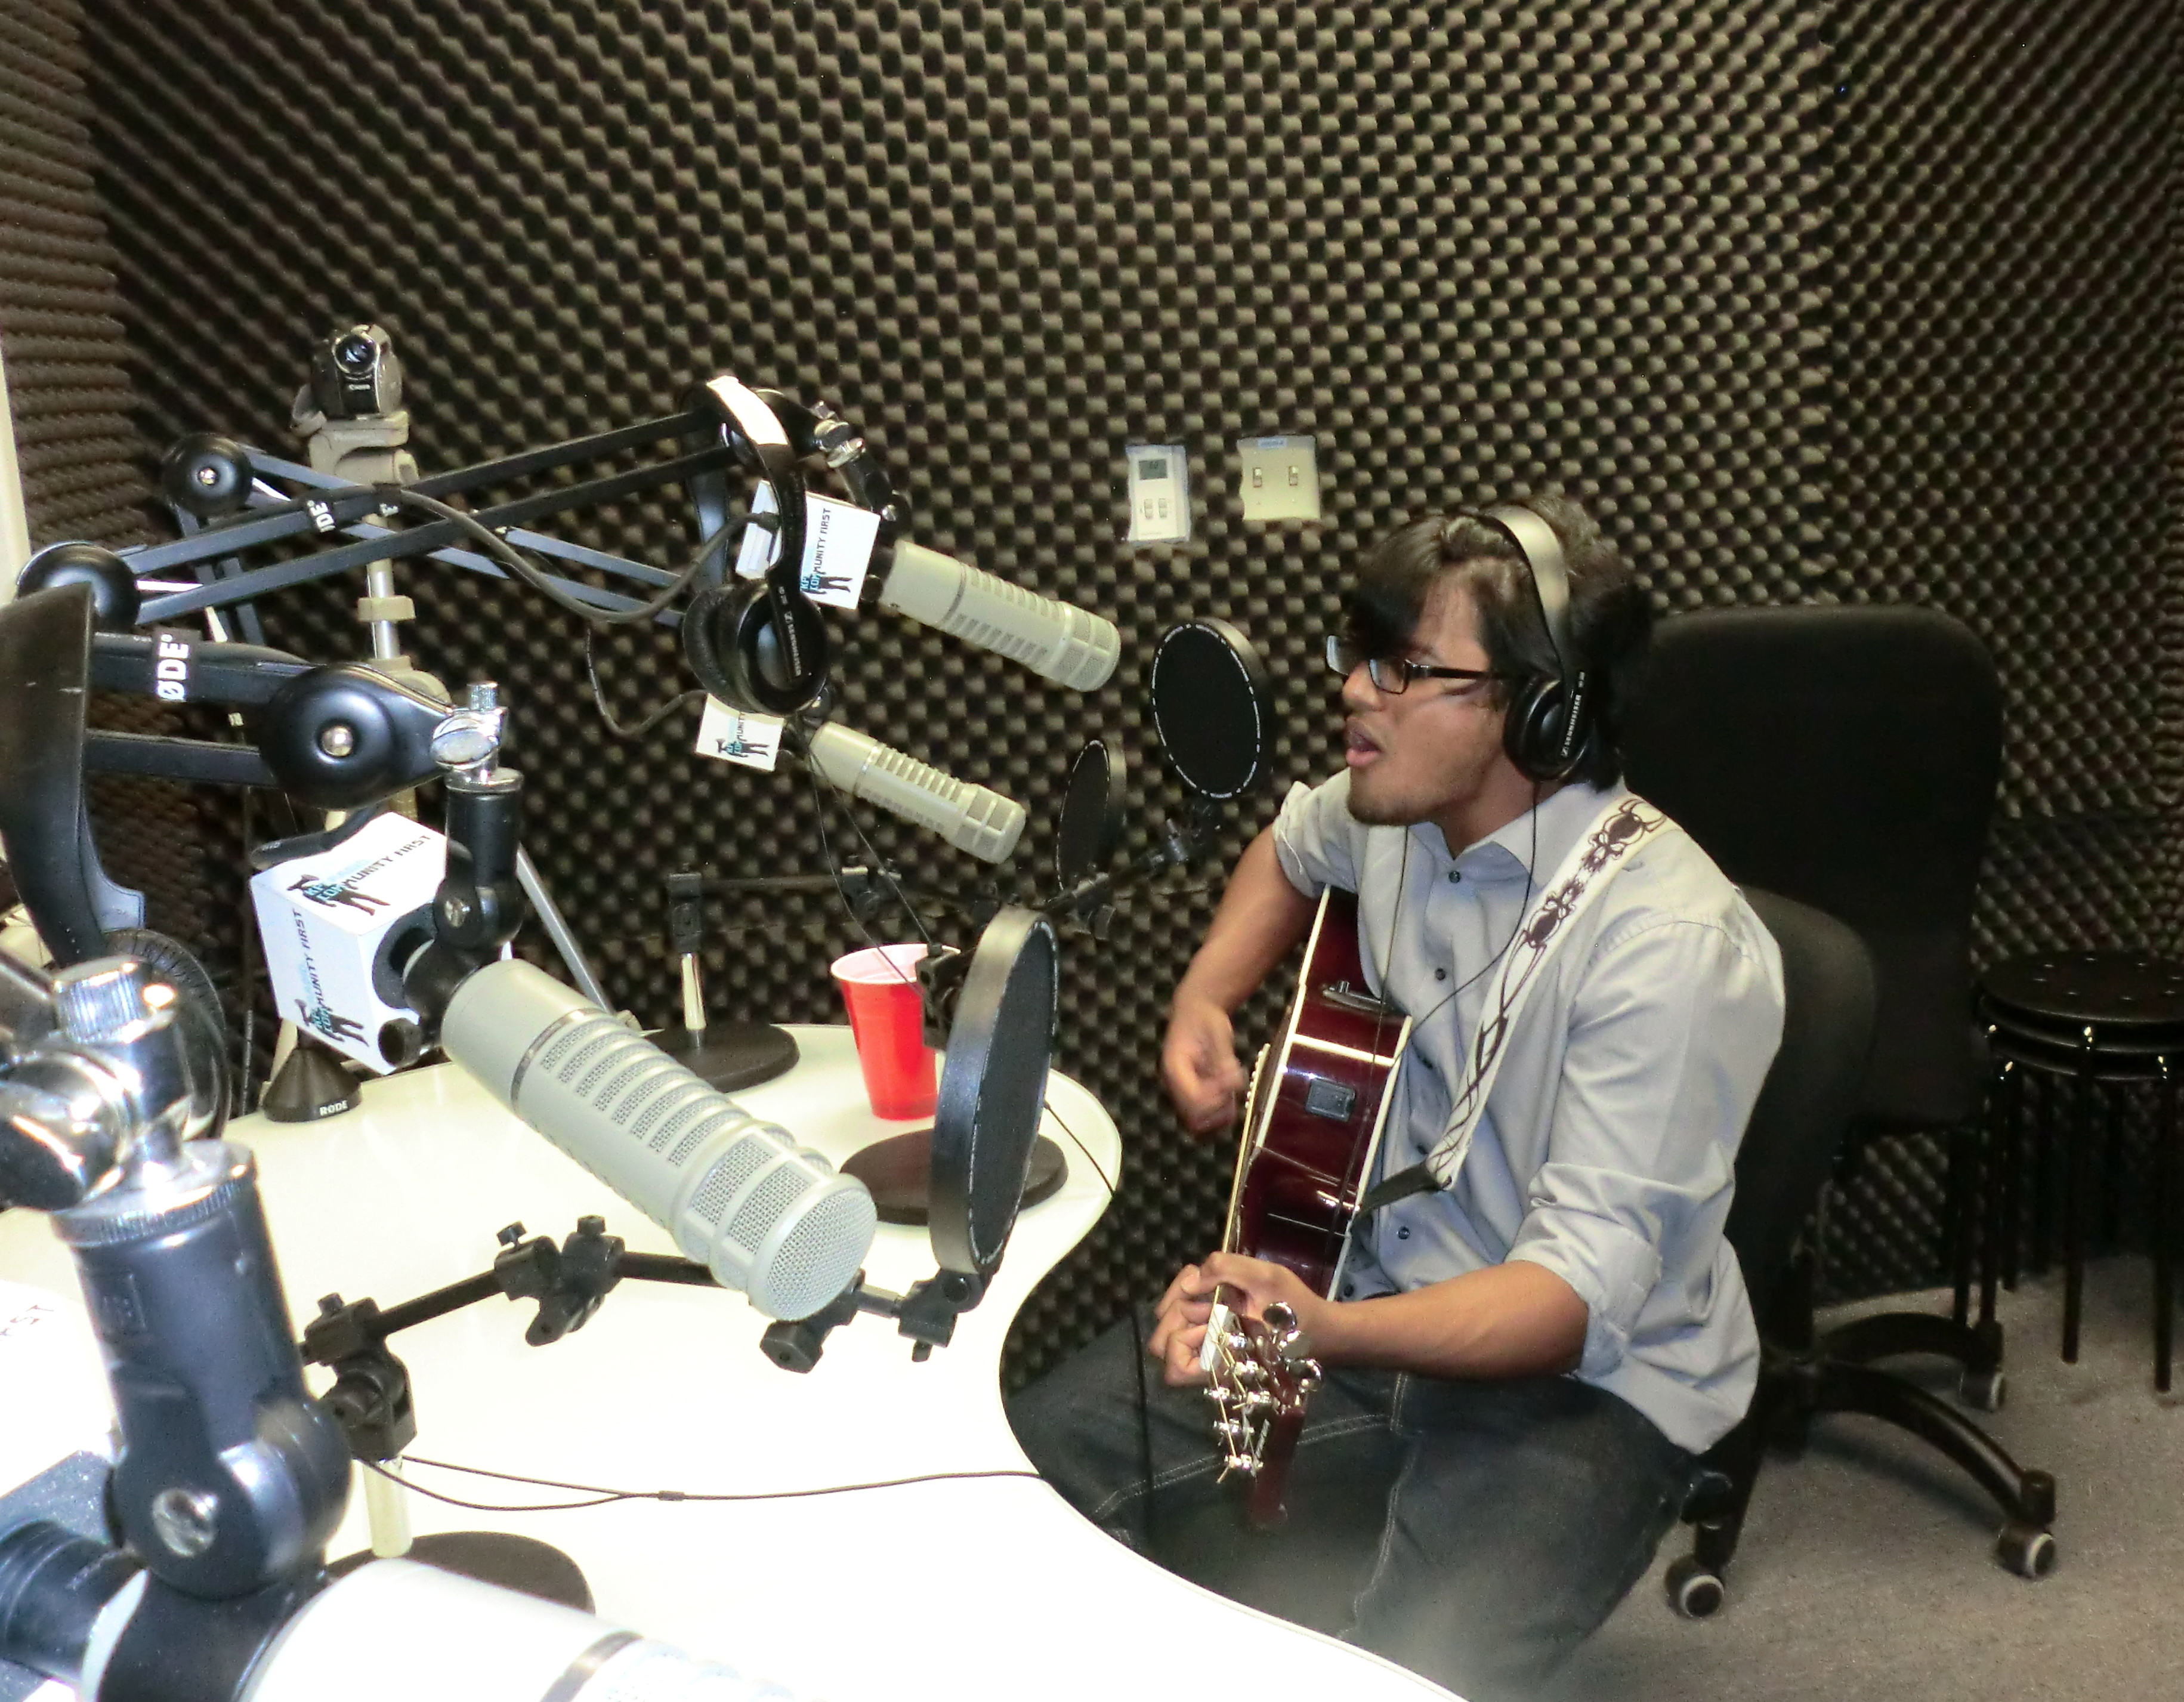 Listen: Encuentro Latino – Acoustic Afternoon with David Durrani